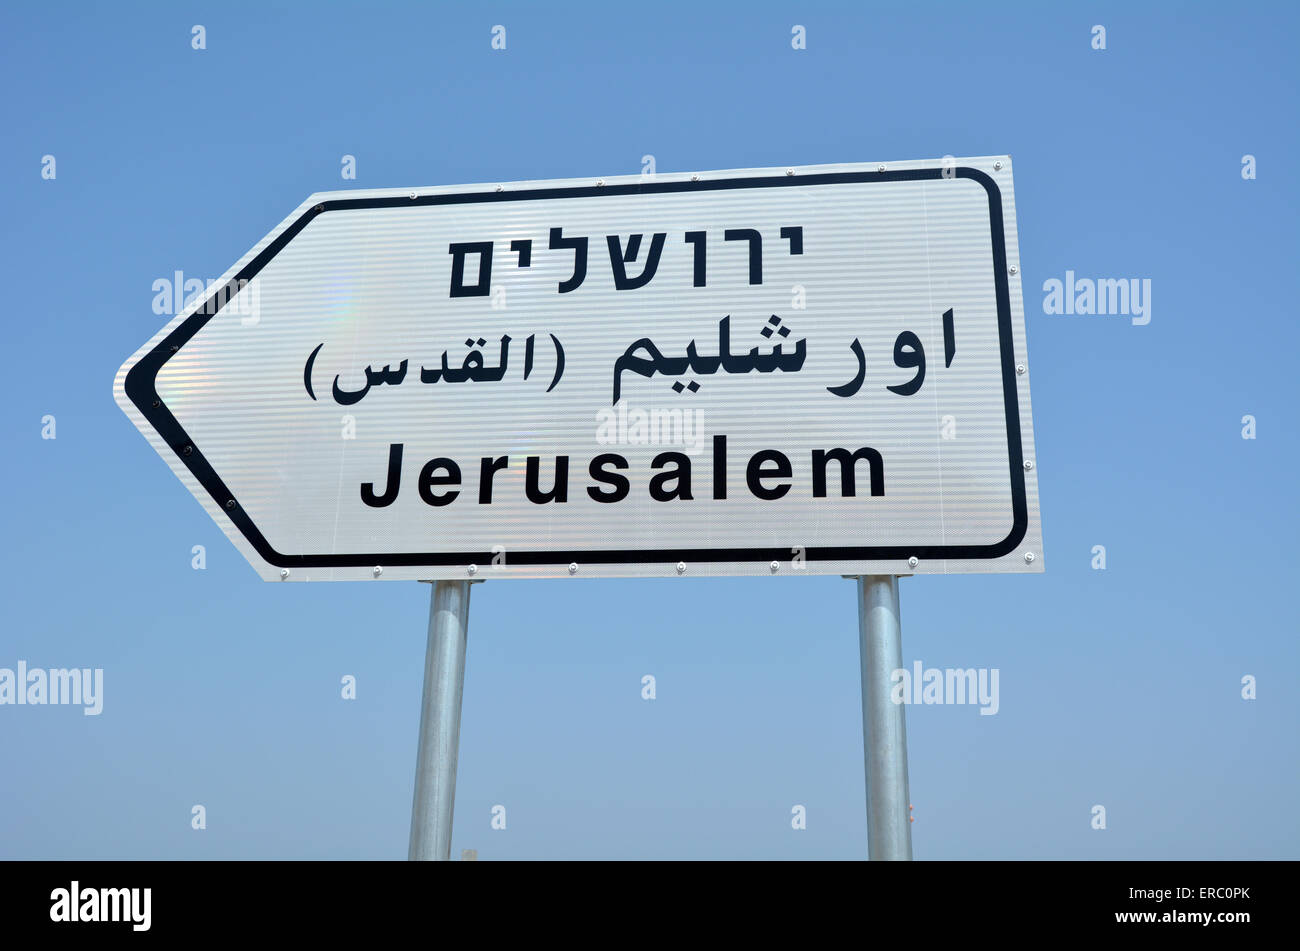 Road sign point the direction to Jerusalem, Israel. - Stock Image